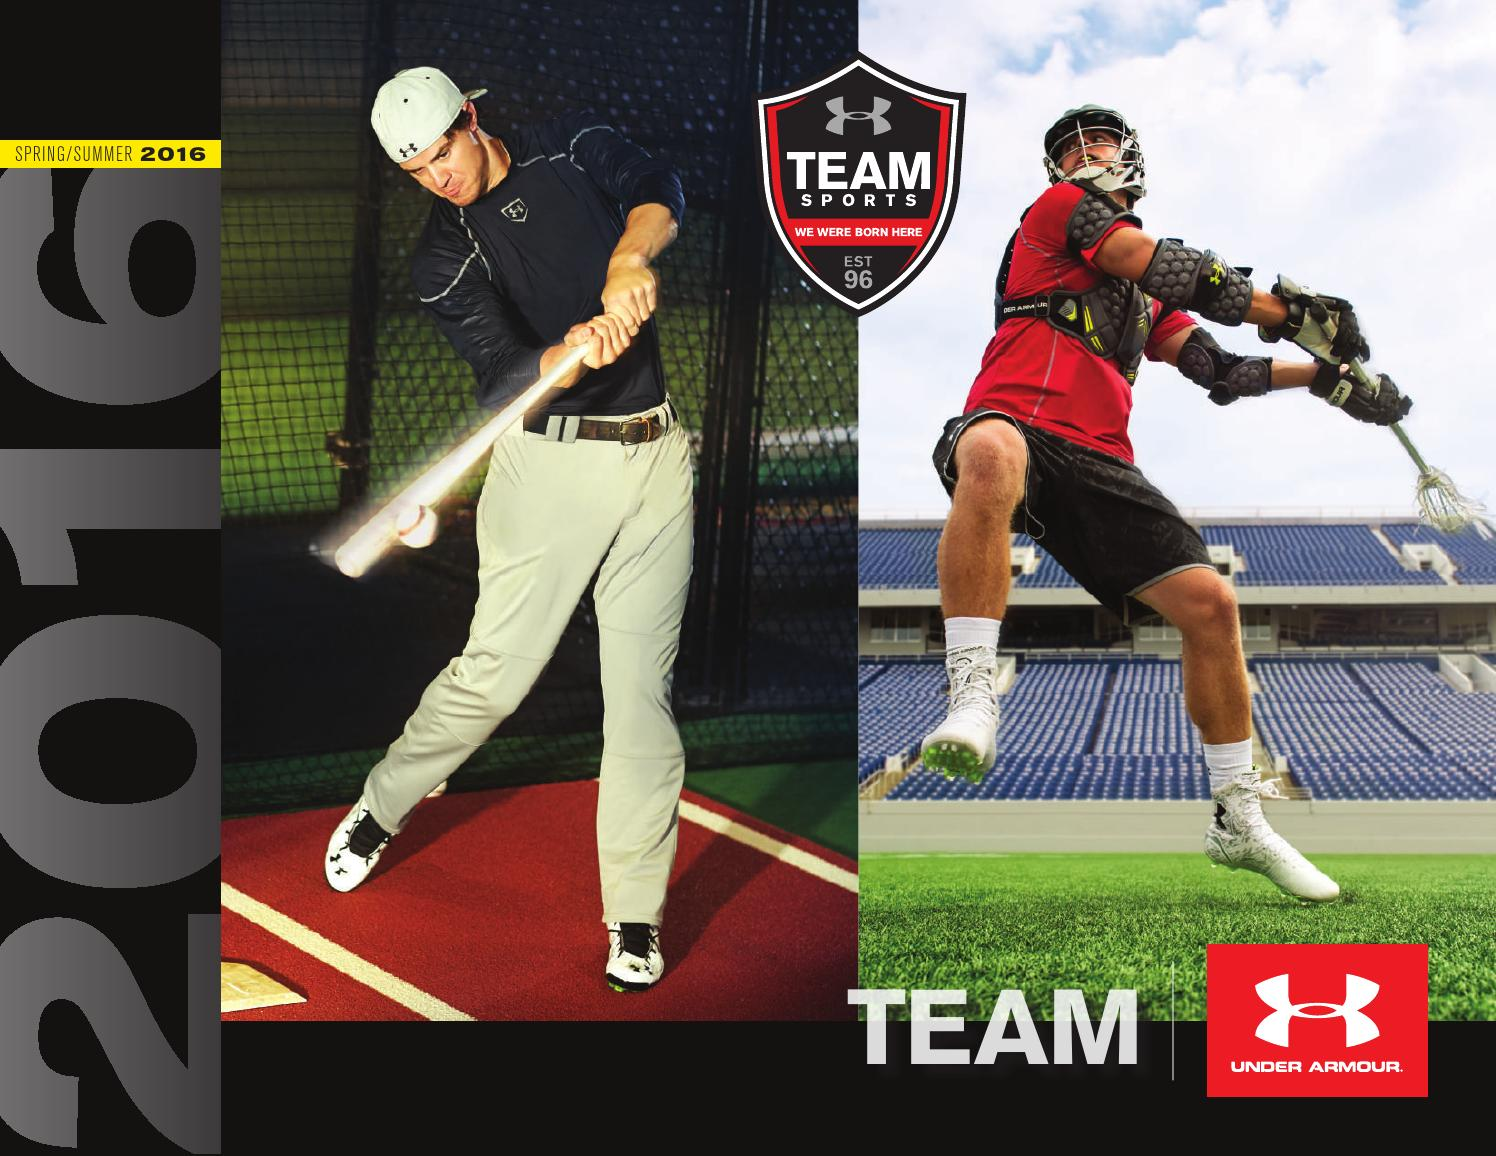 c2f4e397e82 College Town Sports Under Armour 2016 Spring Summer Team by Kollegetown -  issuu